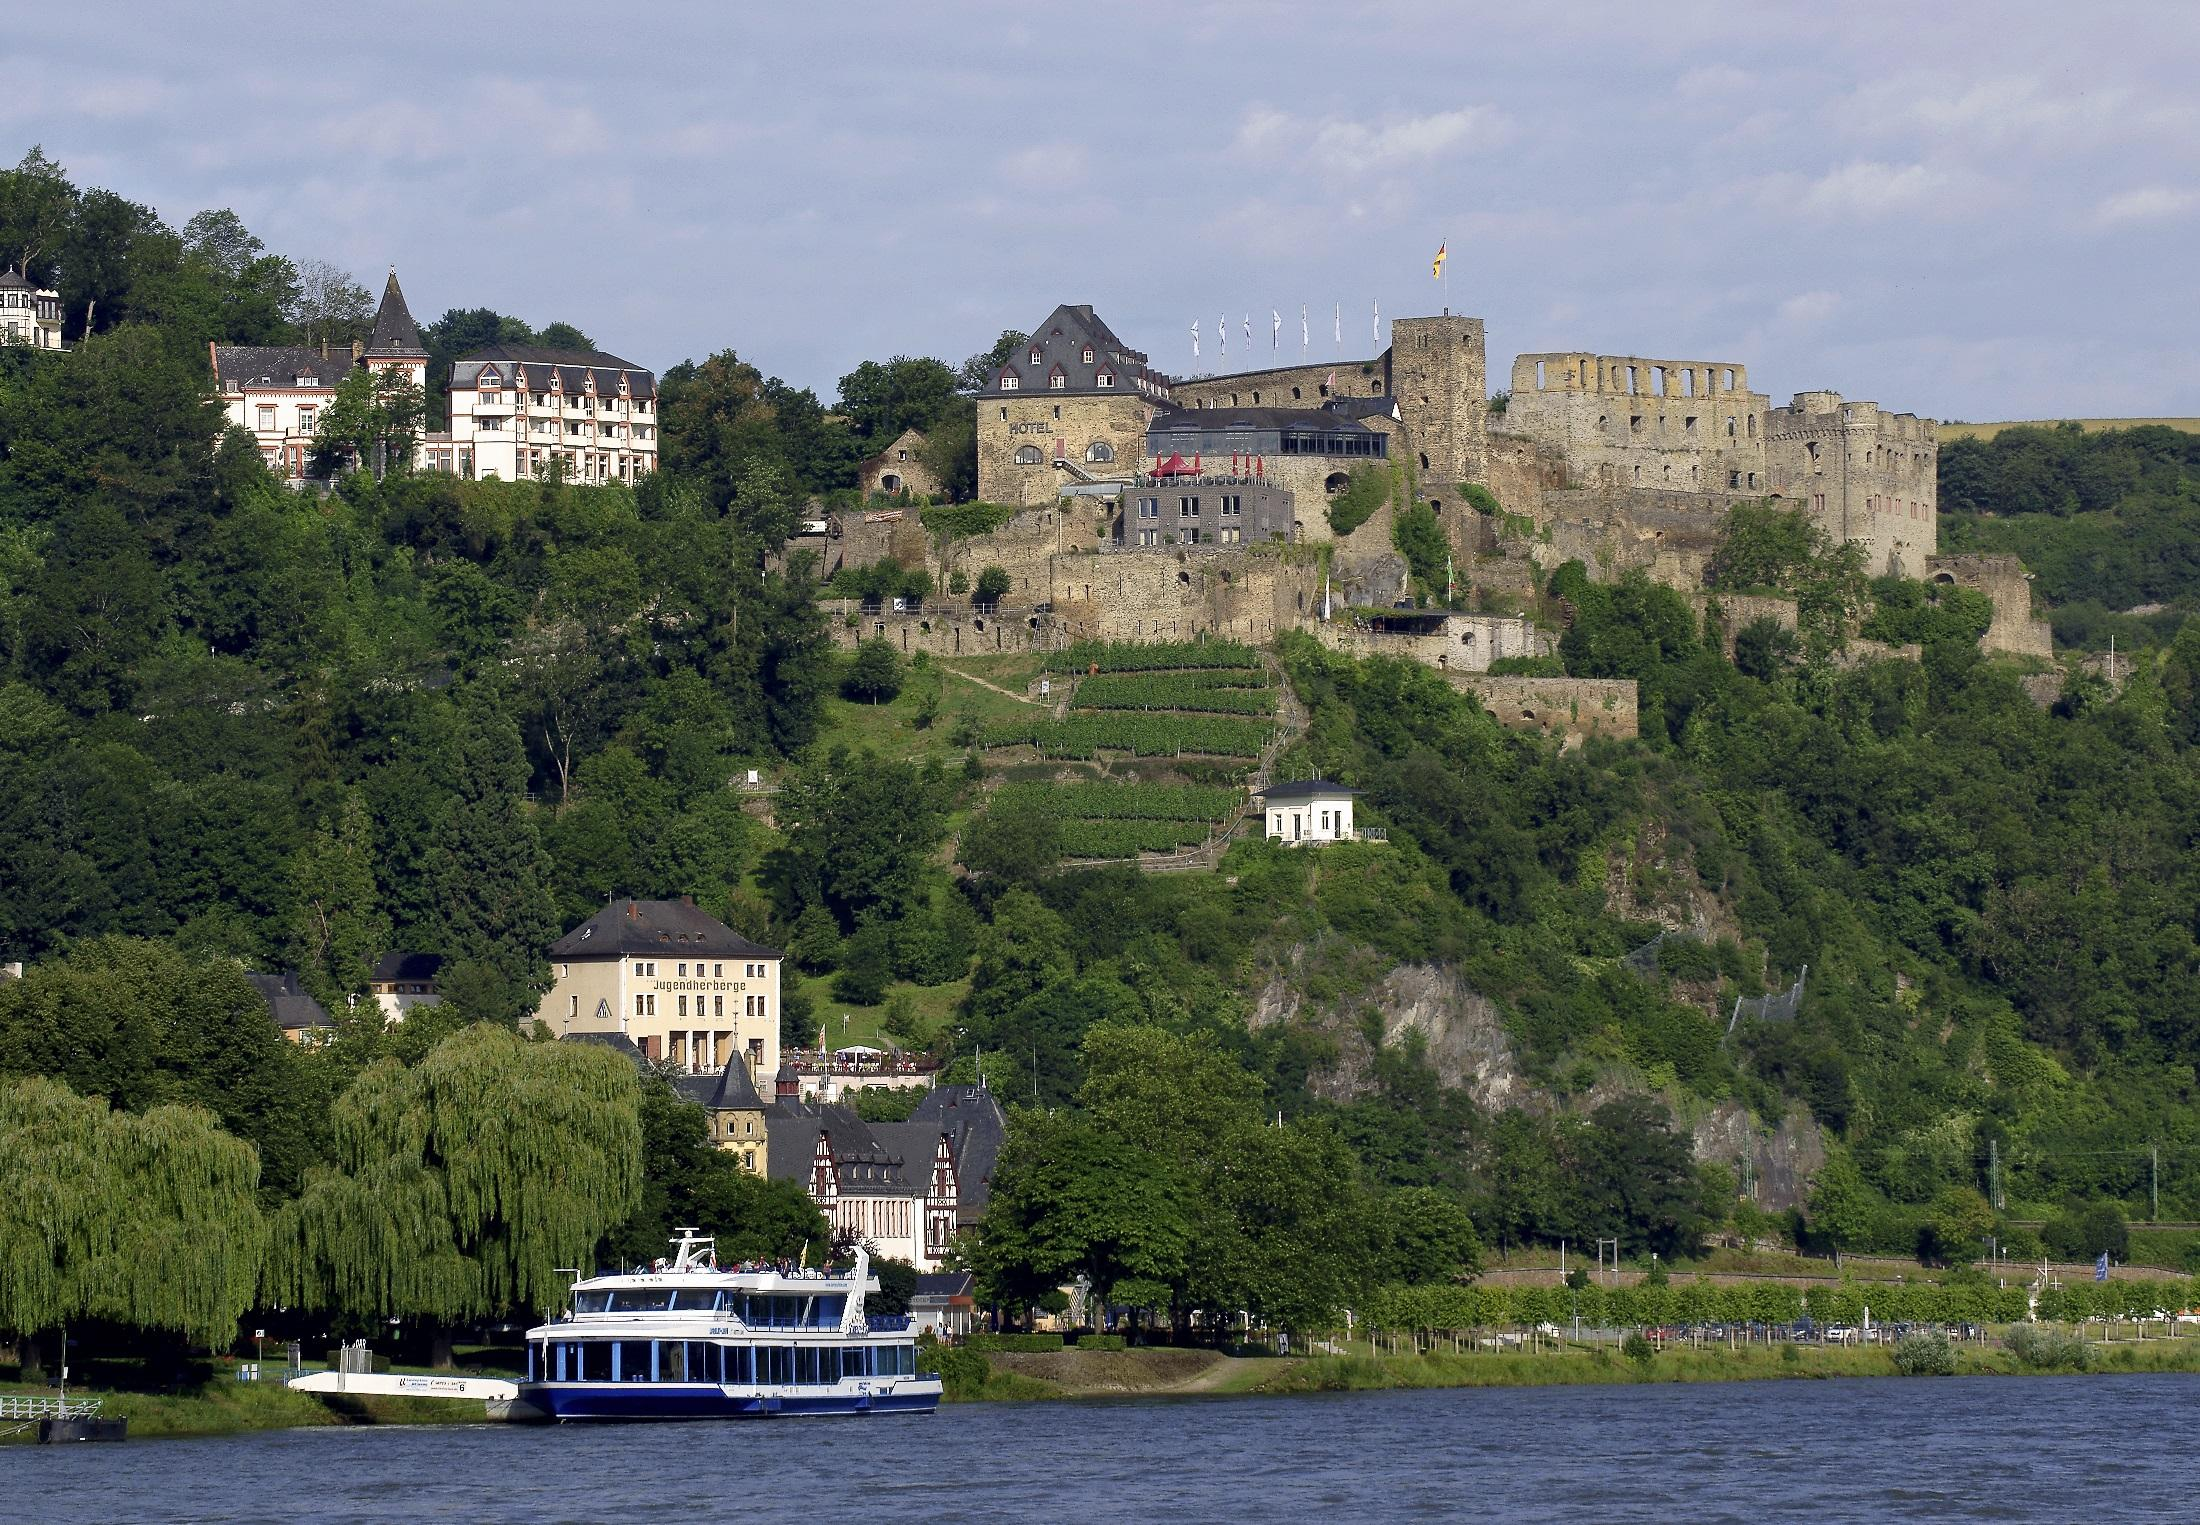 The ruins of the medieval Rheinfels Castle, built in 1245, and the underground passageways of the fortress are very impressive. – Photograf by Friedrich Gier, Romantischer Rhein Tourismus GmbH